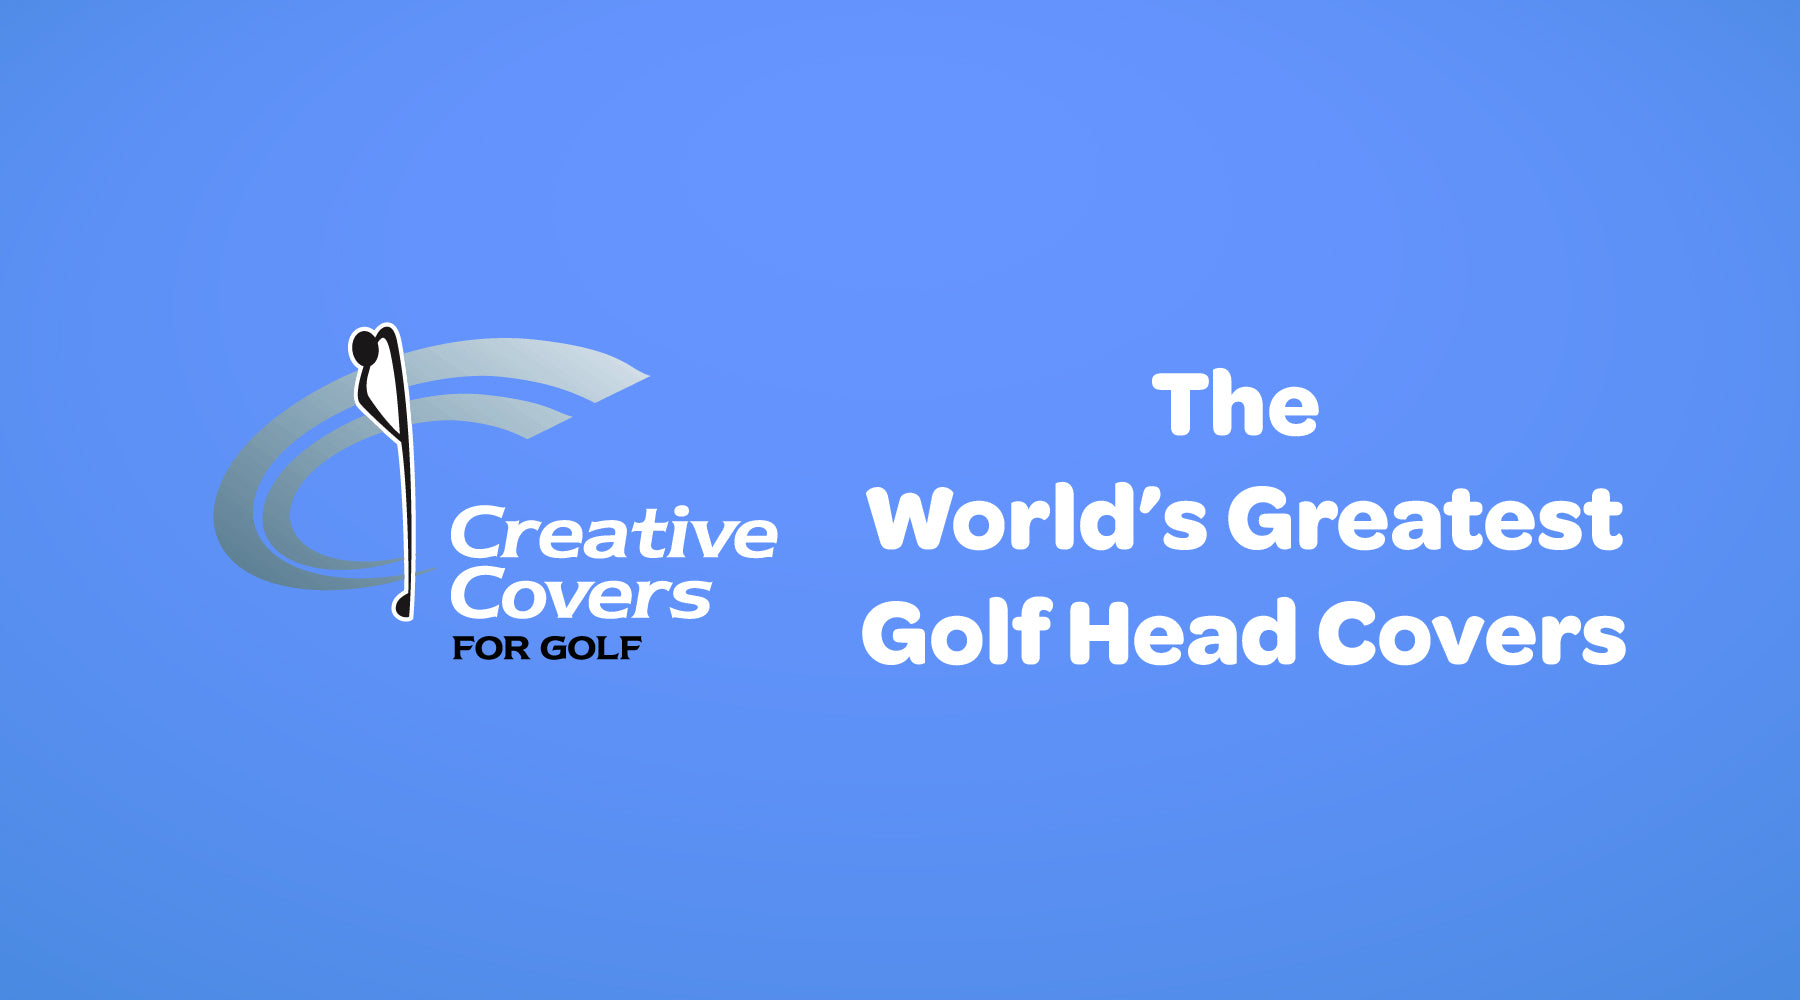 Creative Covers for Golf Worlds greatest golf head covers